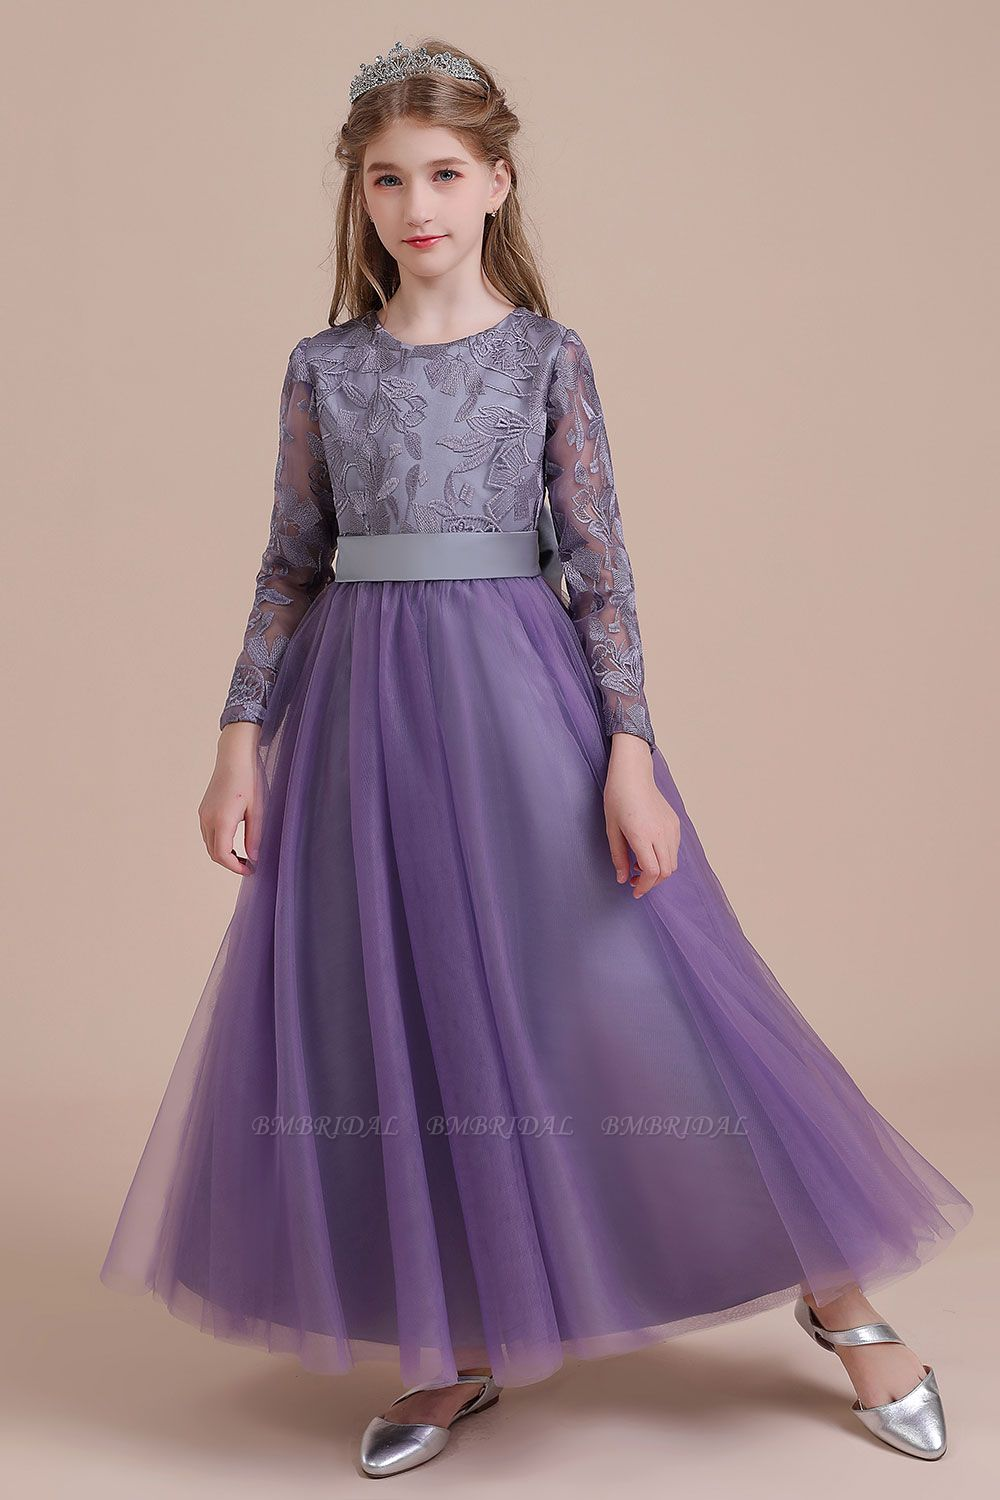 BMbridal A-Line Long Sleeve Ankle Length Flower Girl Dress On Sale